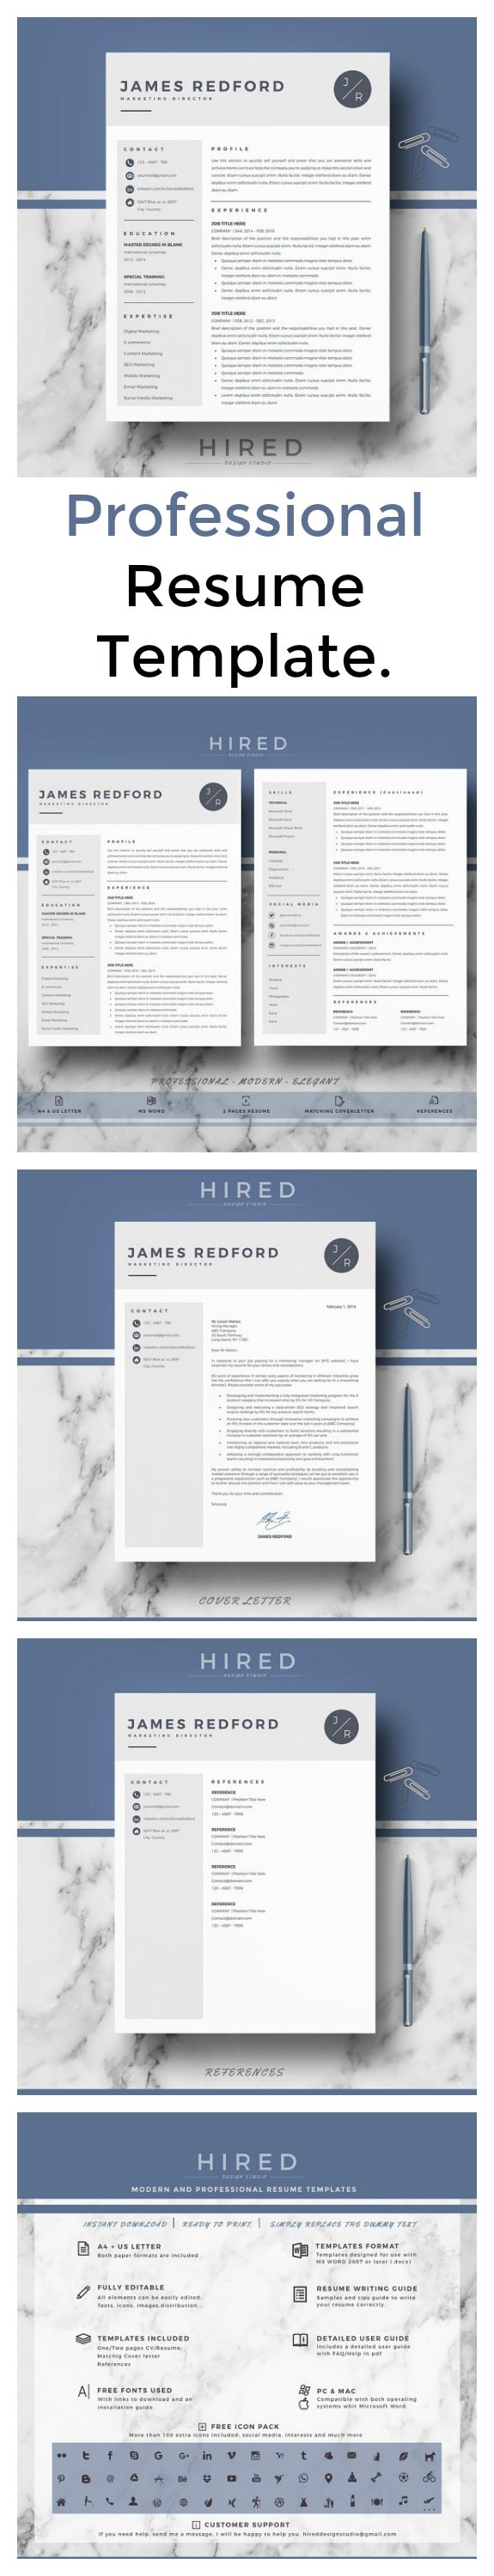 Love This Modern Resume Template Kit! Also Includes A Resume Writing Guide    Bonus!